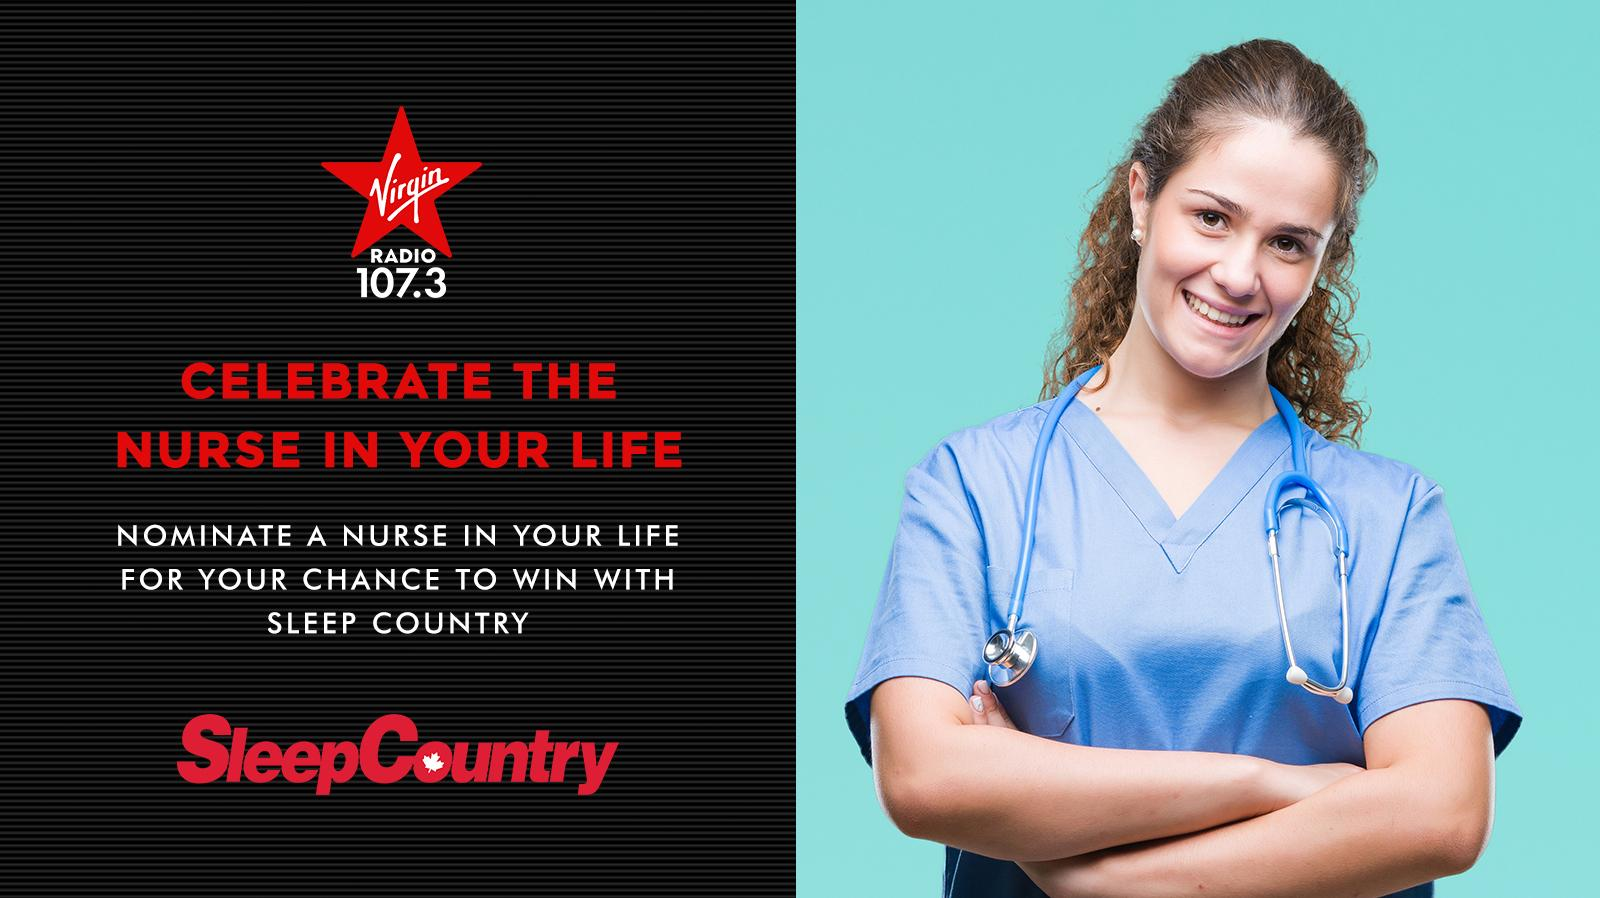 Virgin Web-Sleep Country -Nurse